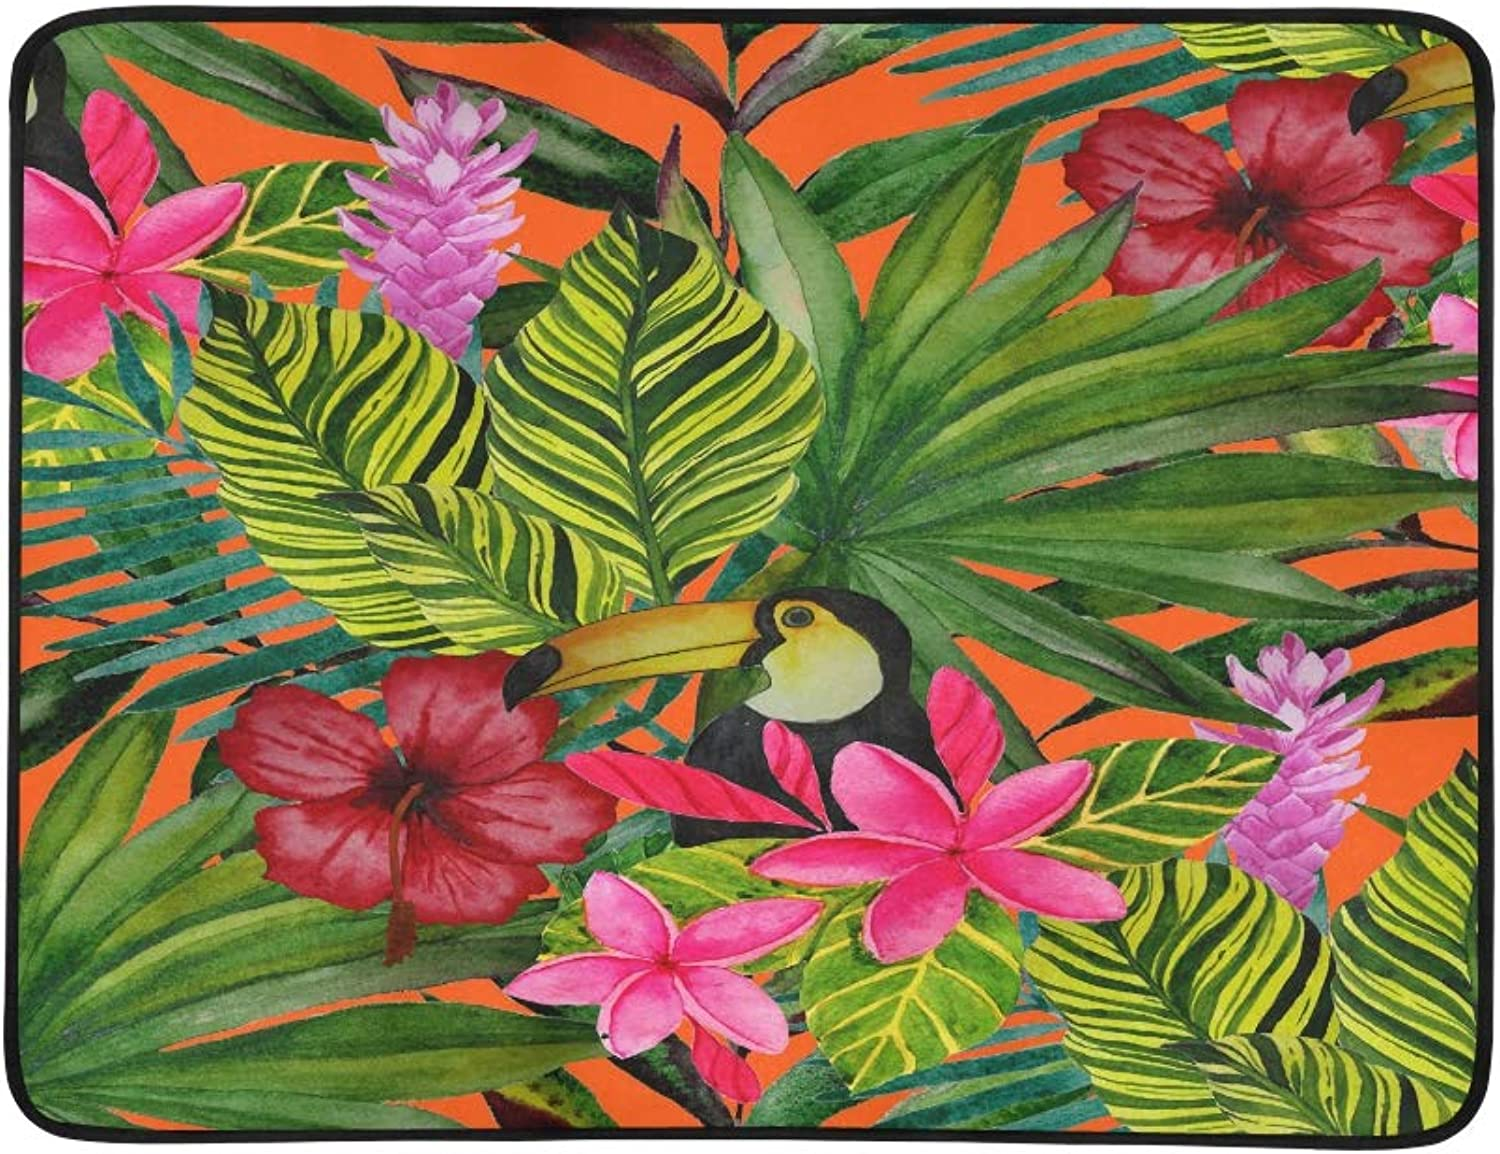 Tropical Leaves with Flowers and Birds Pattern Portable and Foldable Blanket Mat 60x78 Inch Handy Mat for Camping Picnic Beach Indoor Outdoor Travel